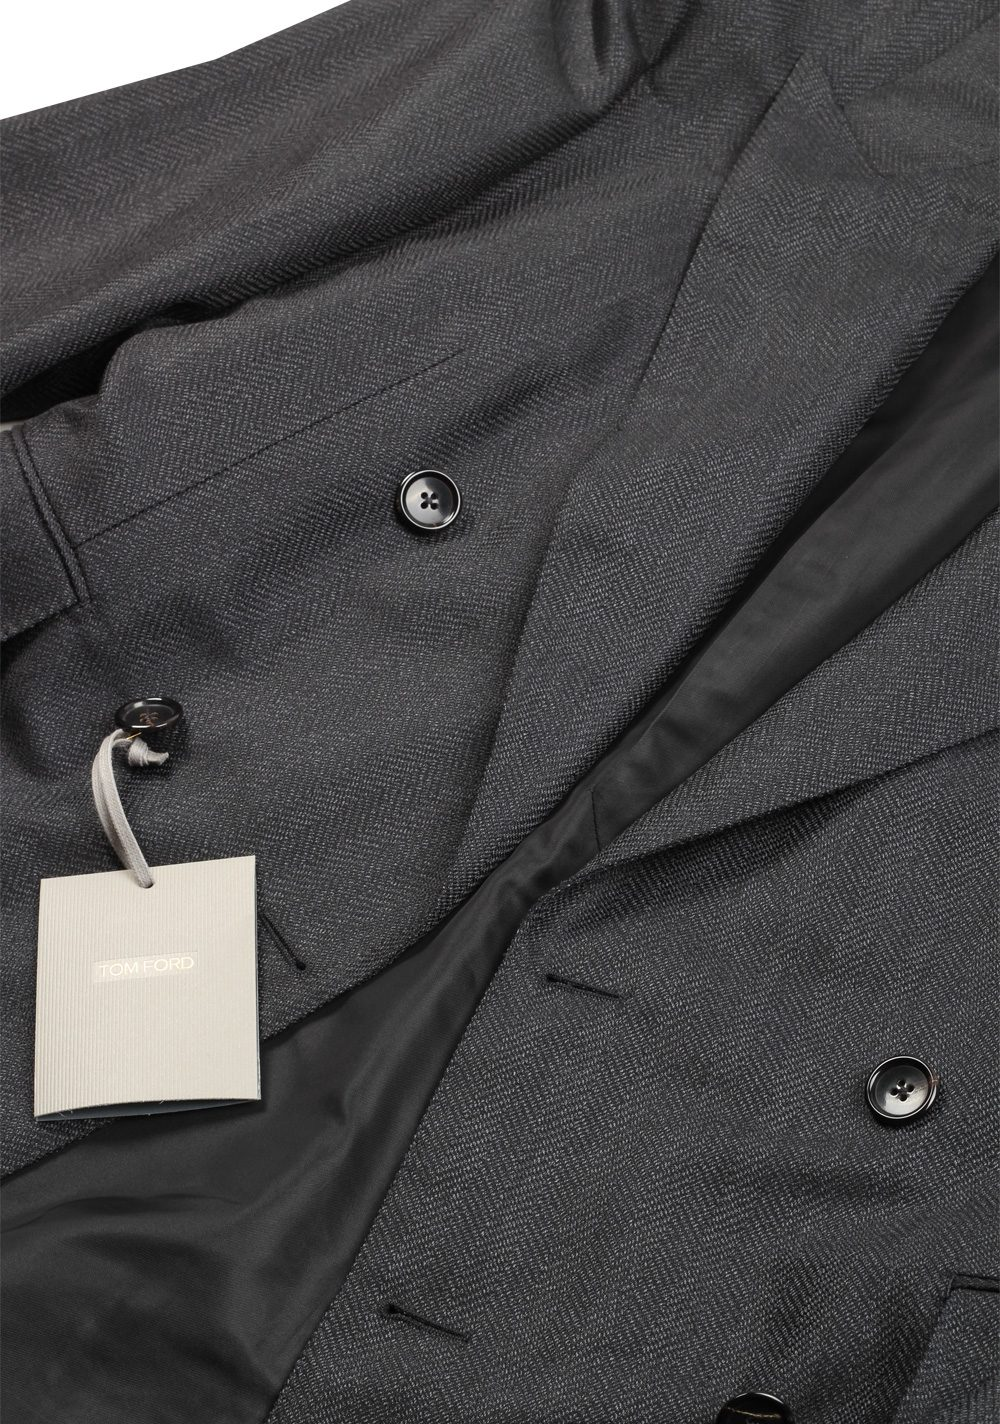 TOM FORD Shelton Gray Double Breasted Suit Size 48 / 38R U.S. In Mohair Wool | Costume Limité